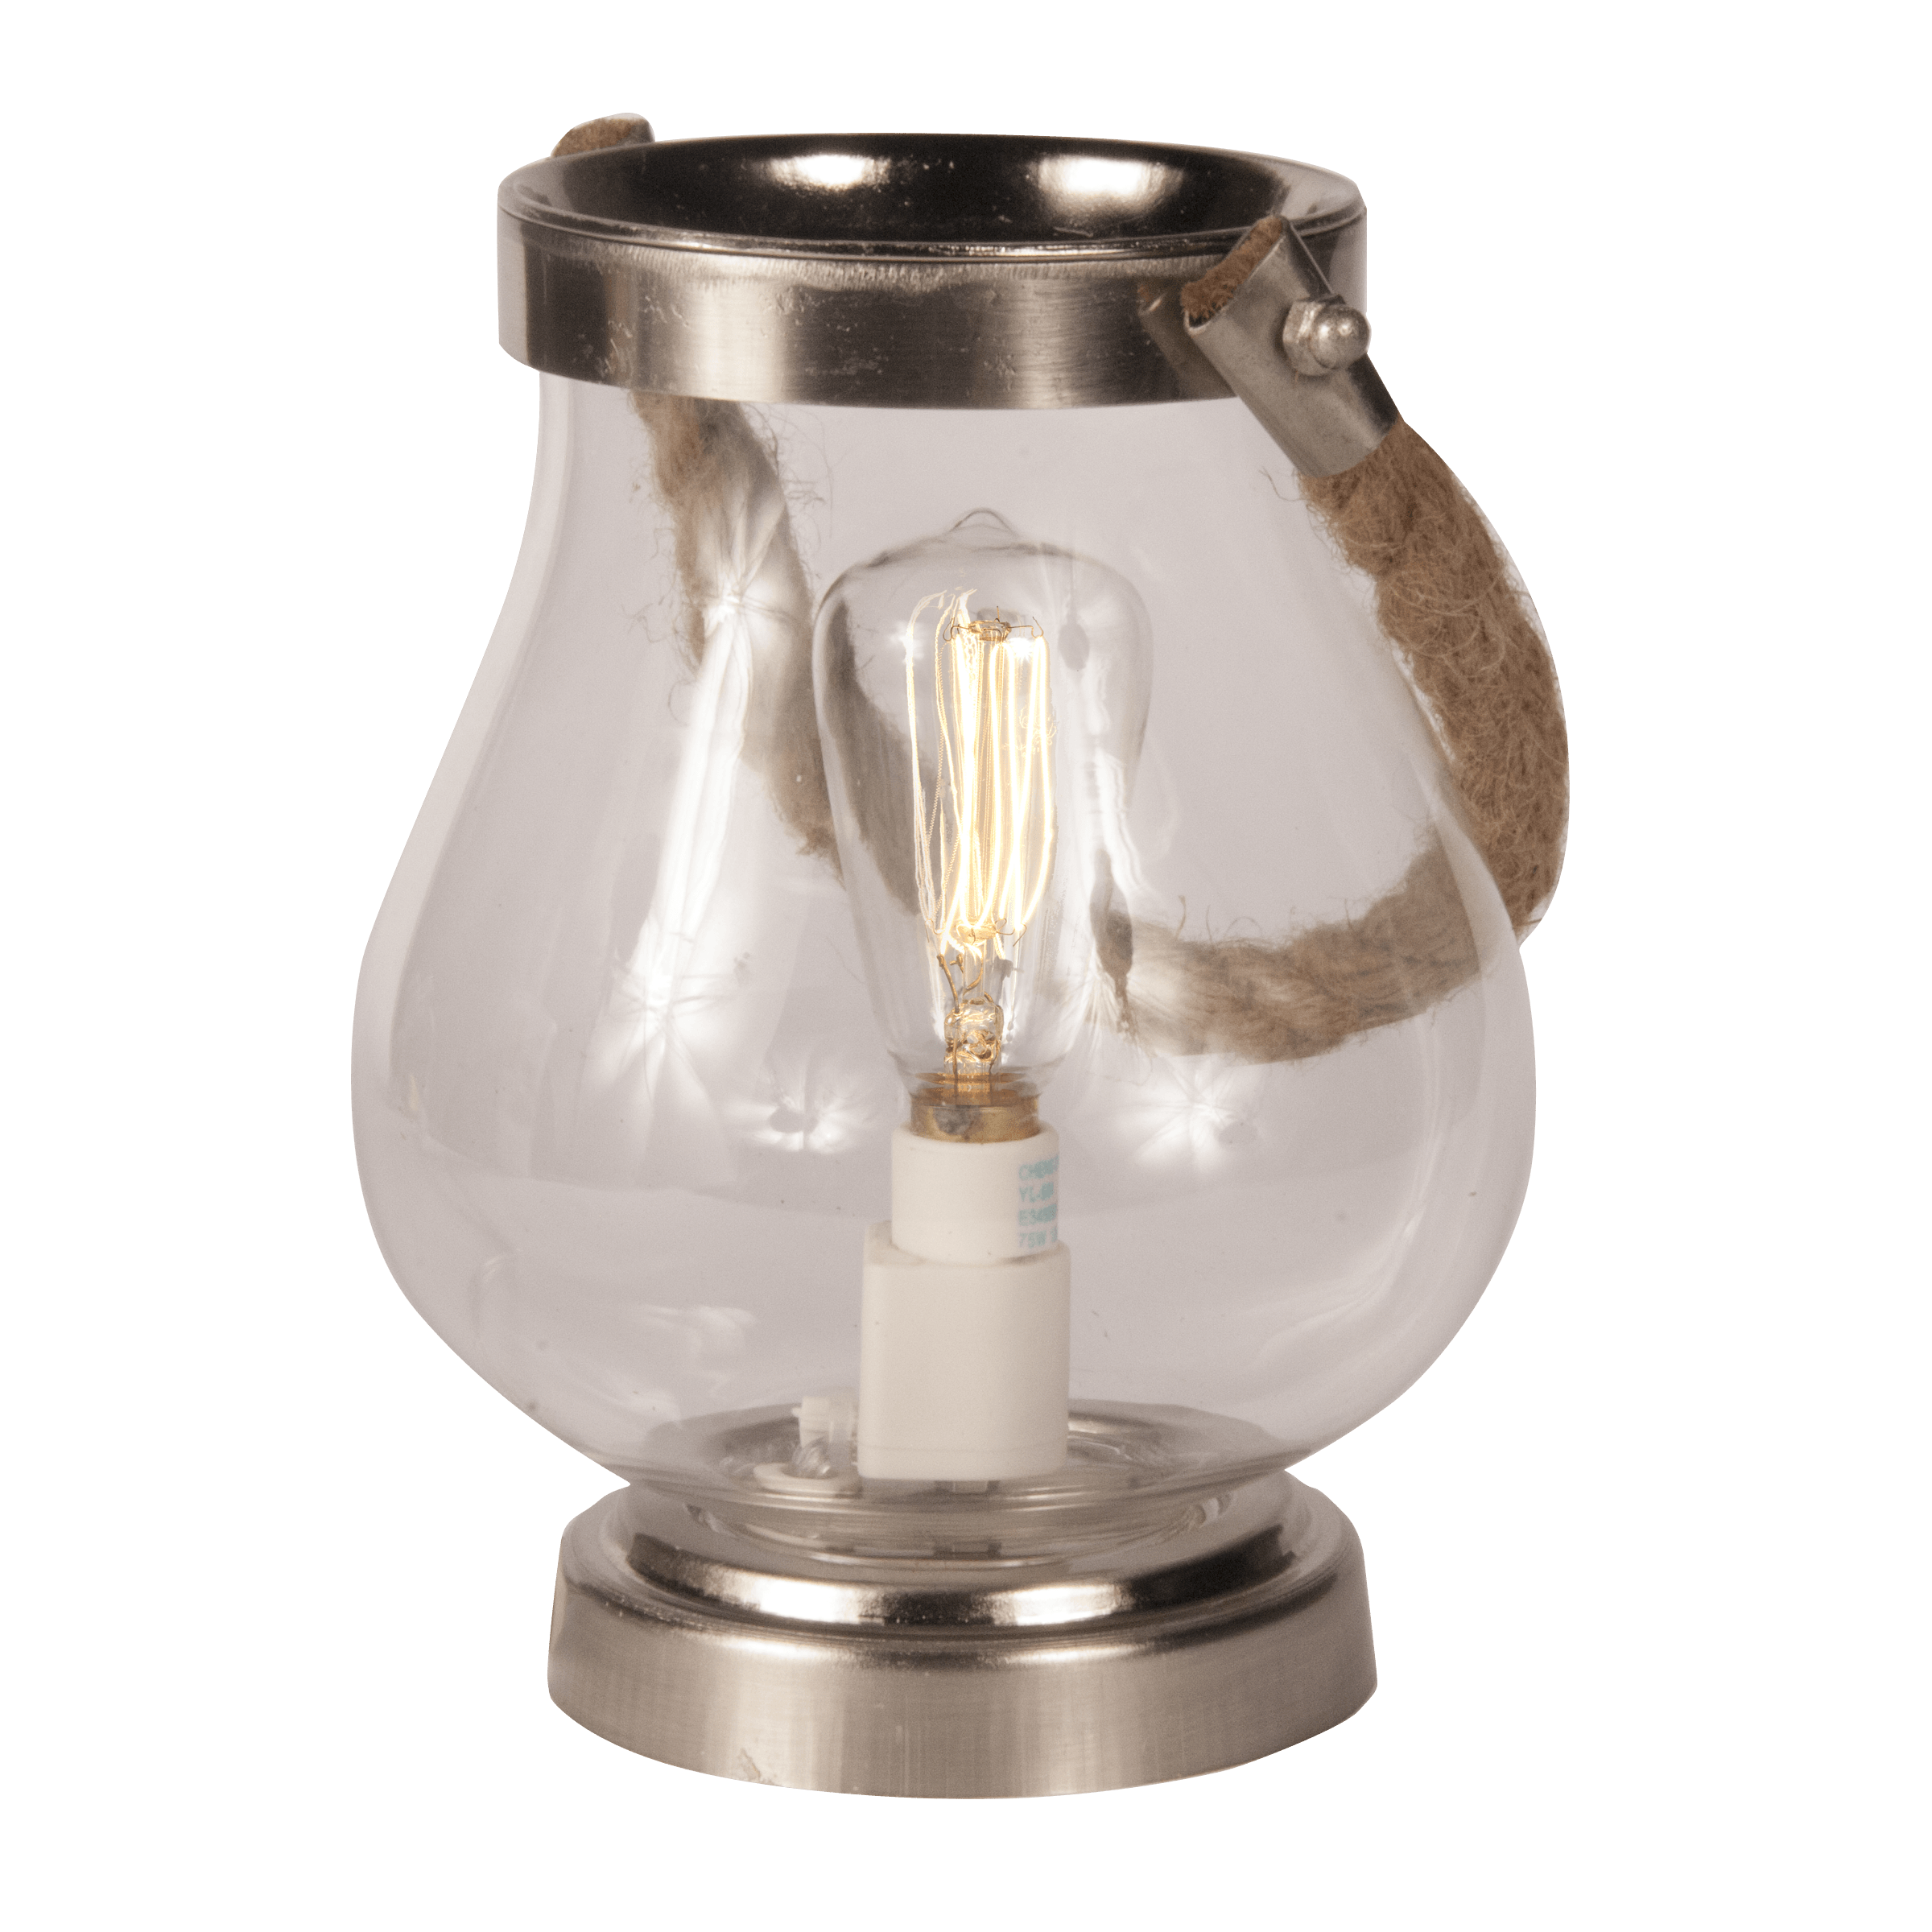 ScentSationals Edison Hurricane Lantern Full-Size Scented Wax Warmer